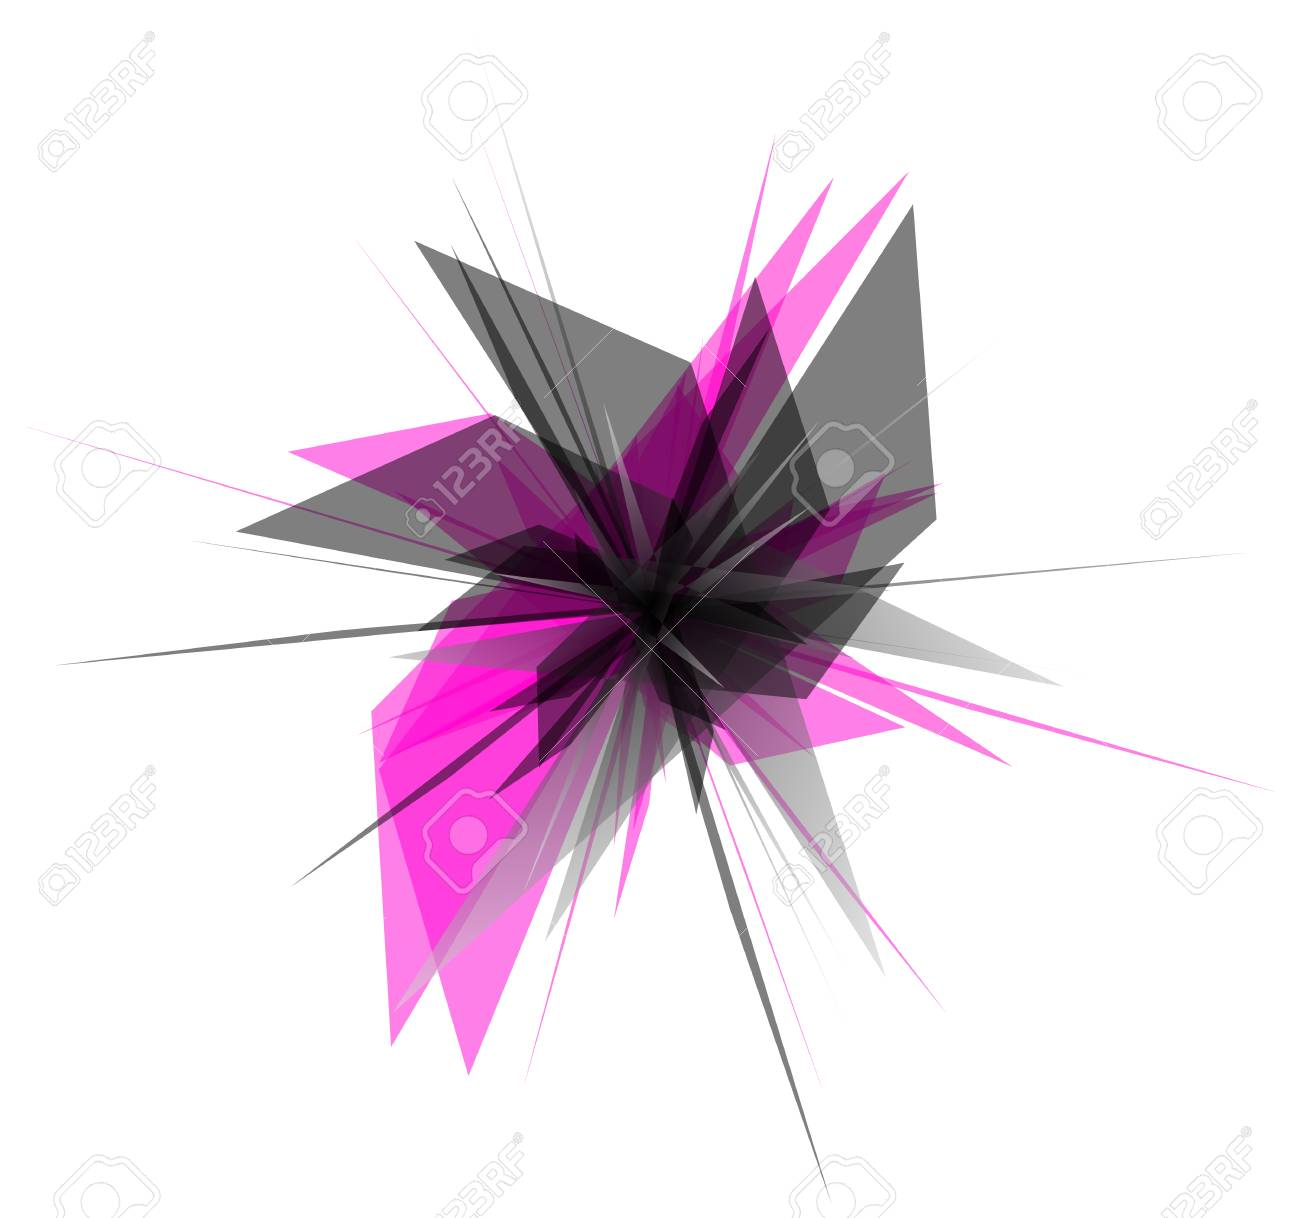 abstract edgy geometric graphics shatters splinters abstract